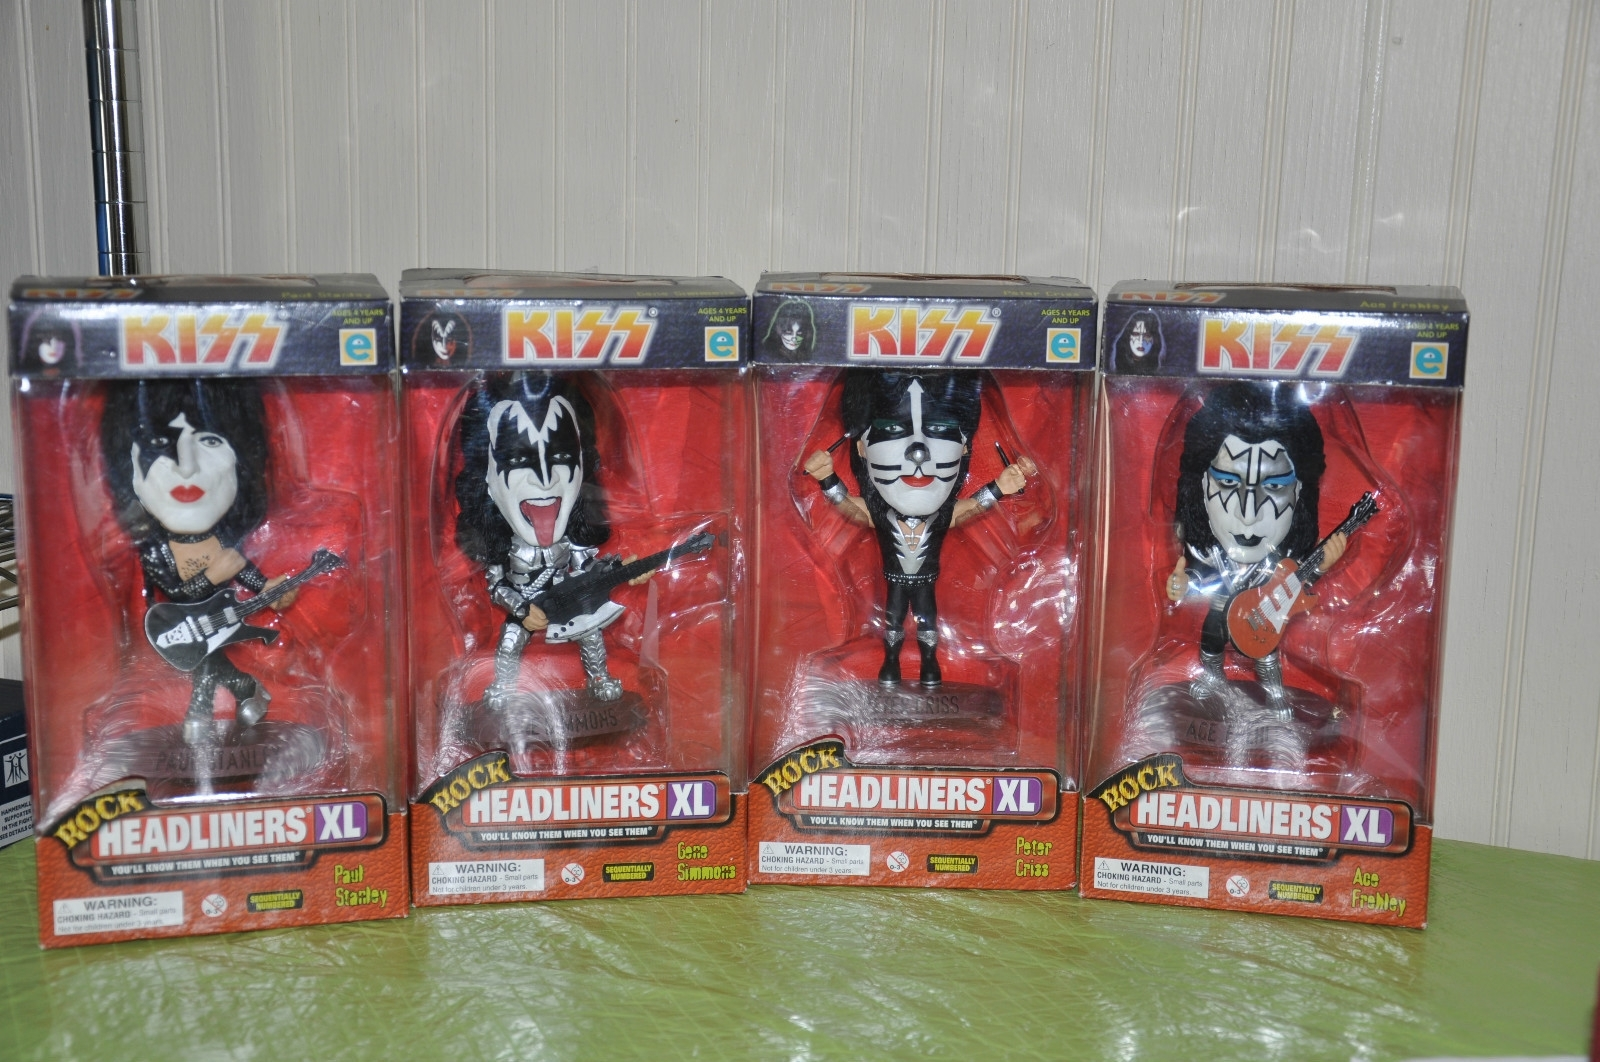 Primary image for KISS DOLLS SET of 4 HEADLINERS XL FIGURES BOXED 1999 - brand new